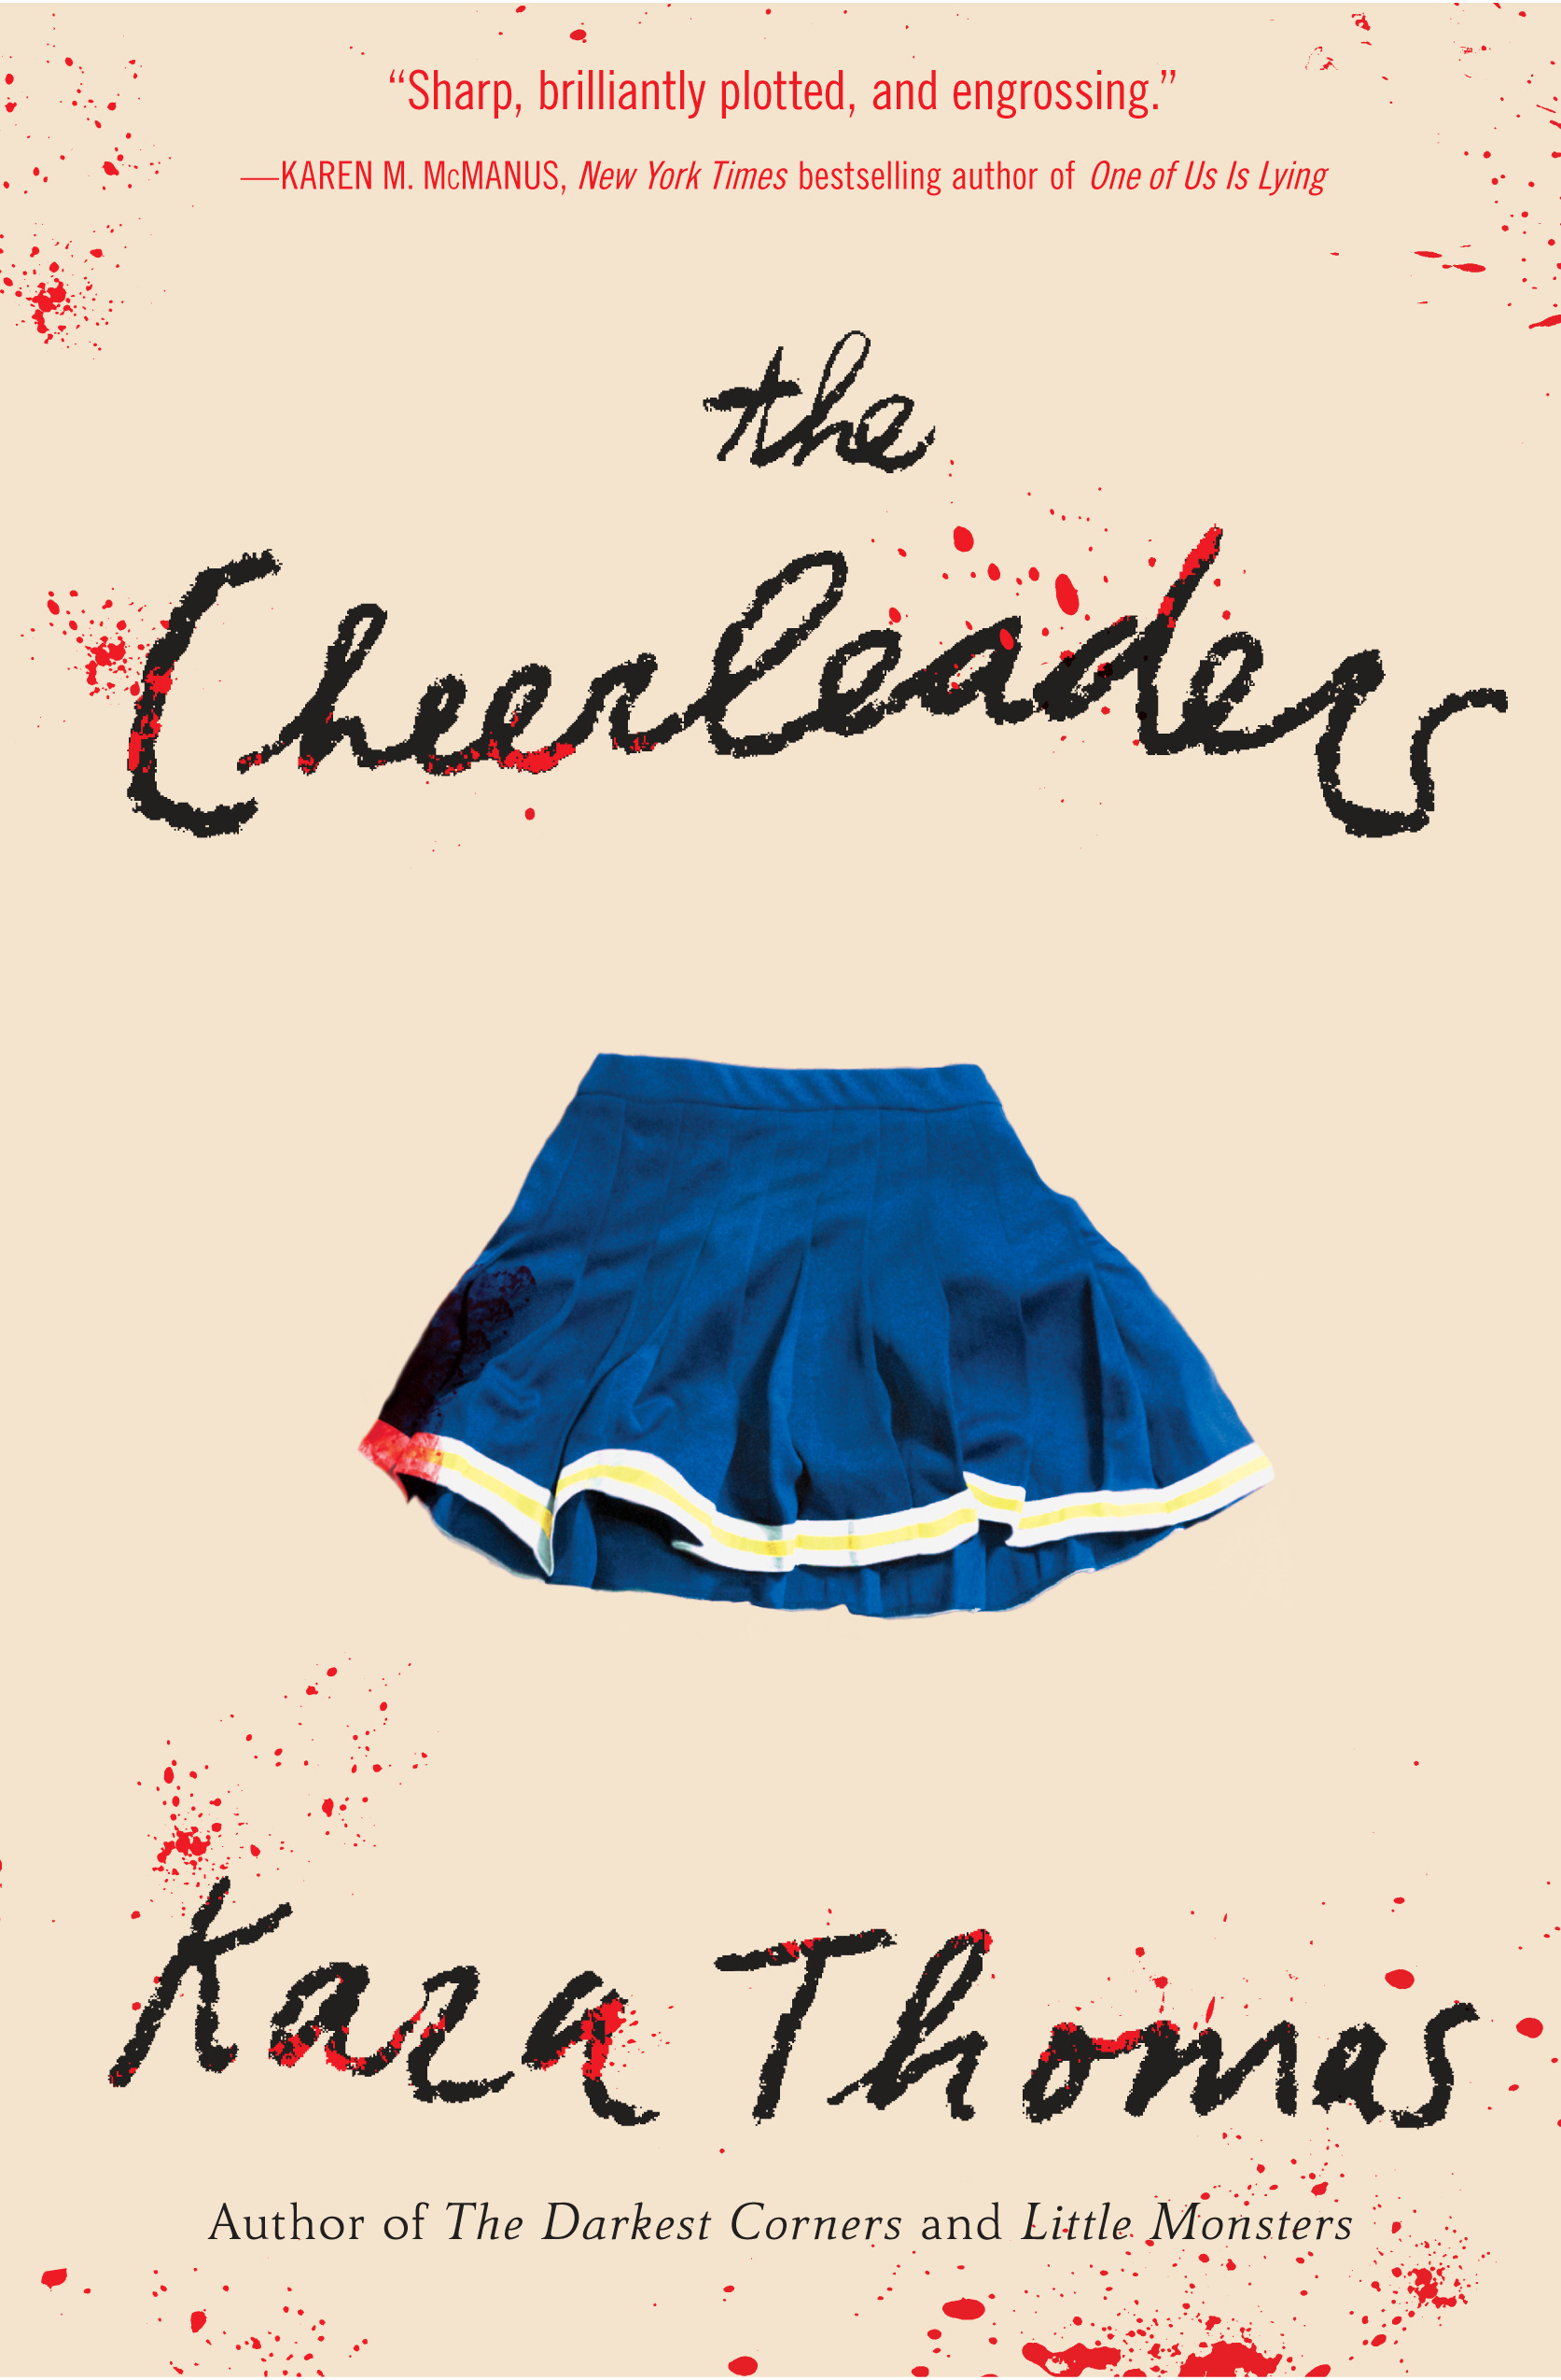 Blog Tour & Giveaway: The Cheerleaders by Kara Thomas